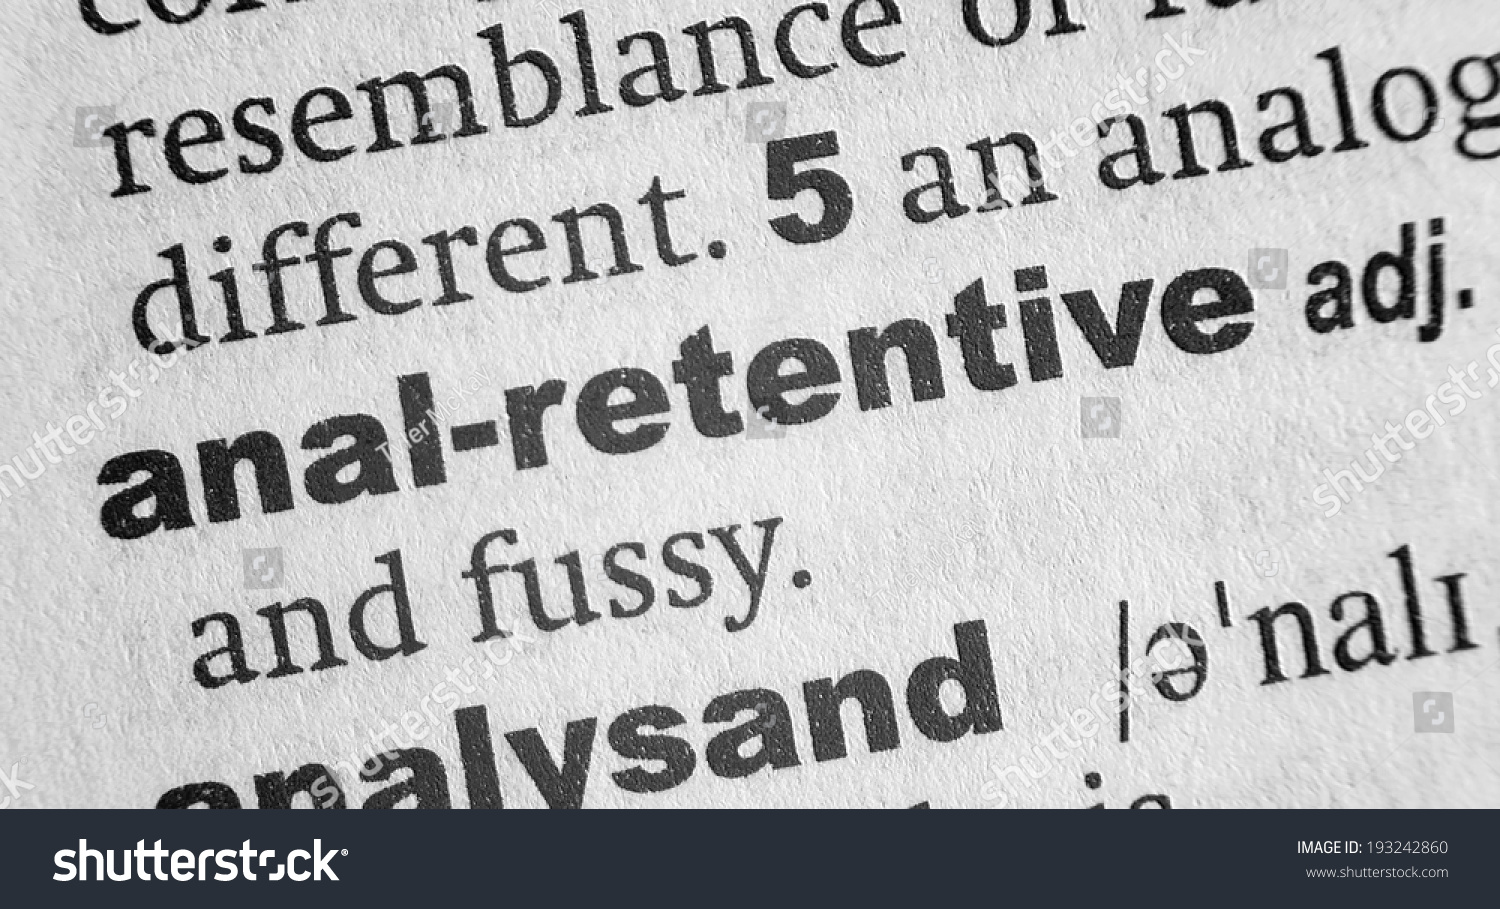 Speaking, would anal definition retentive